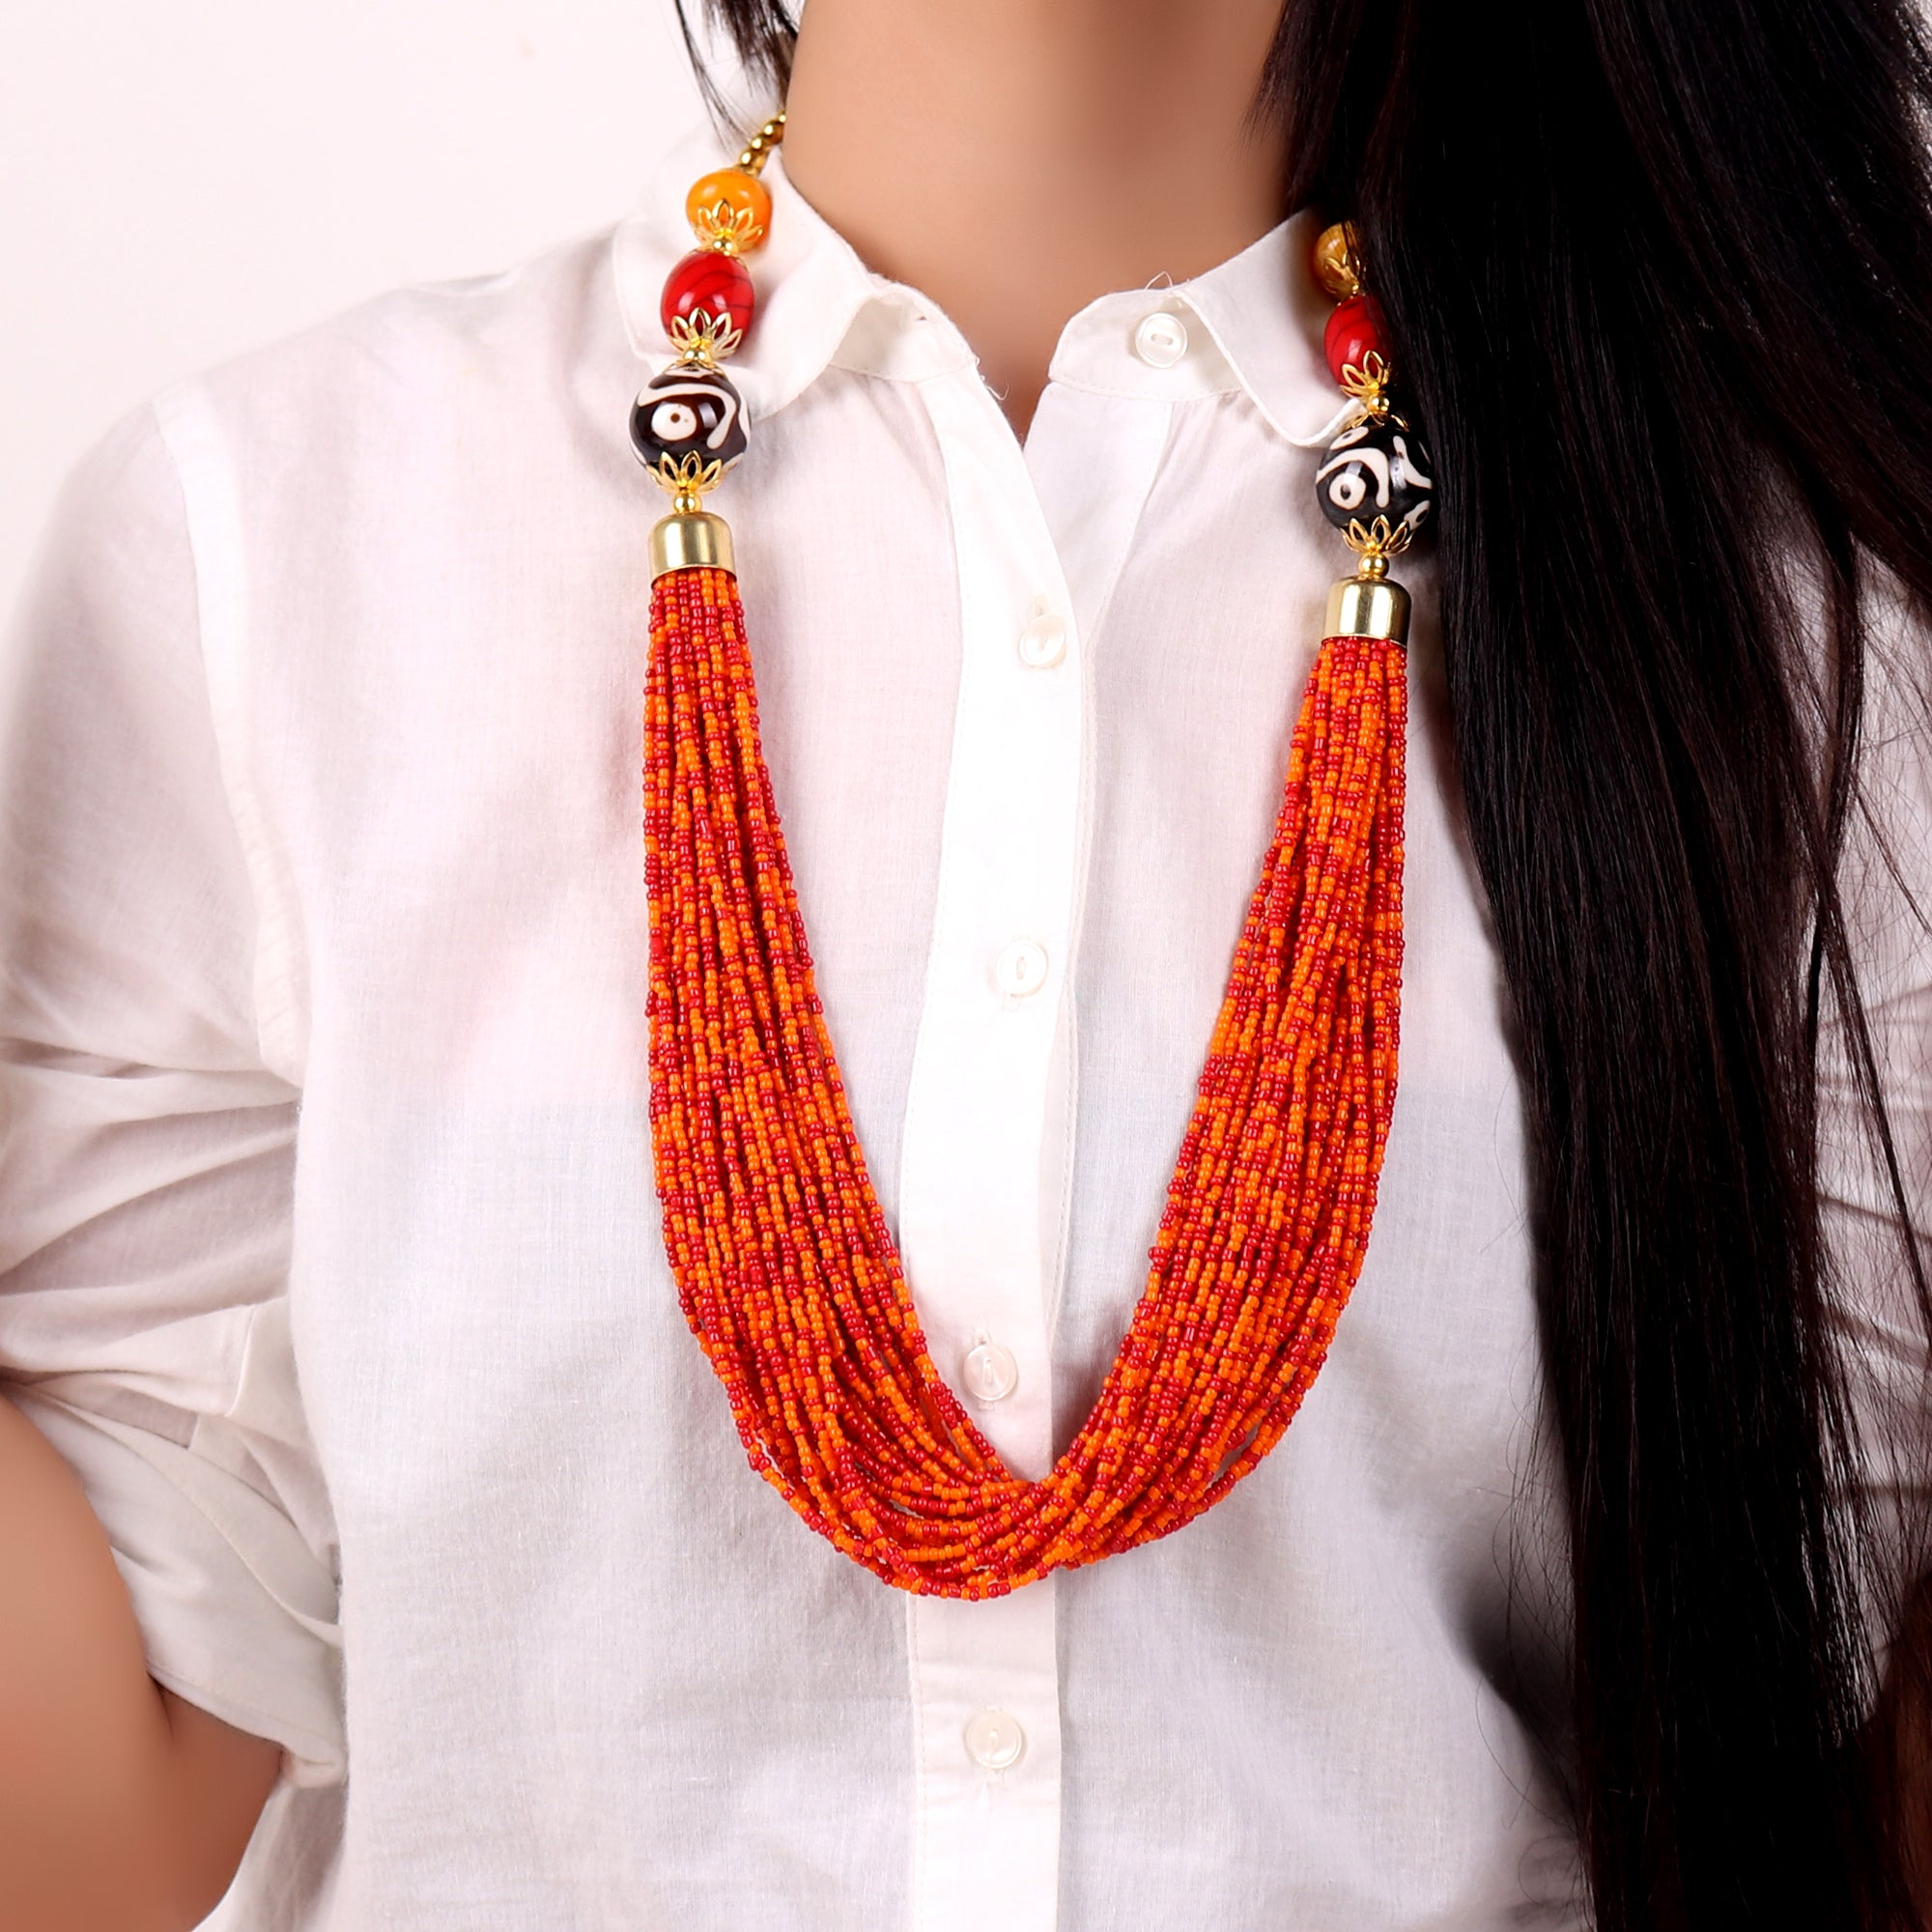 Necklace,Boho Beaded Necklace with Orange beads - Cippele Multi Store